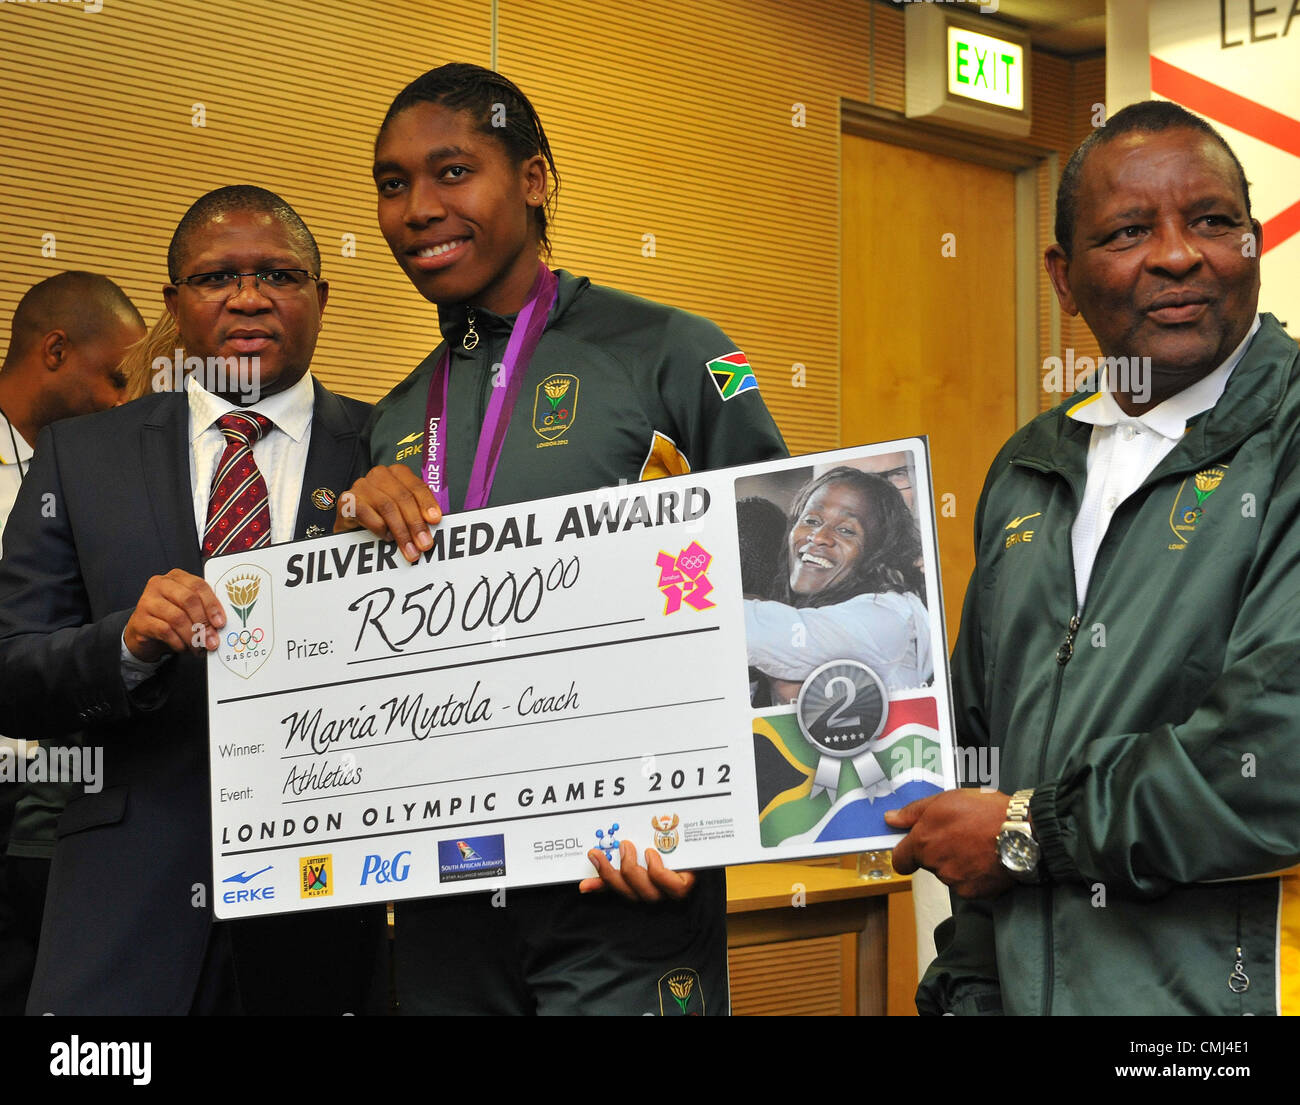 14th Aug 2012 Johannesburg, South Africa. Caster Semenya collects for her coach Maria Mutola from Fikile Mdlalula - Stock Image